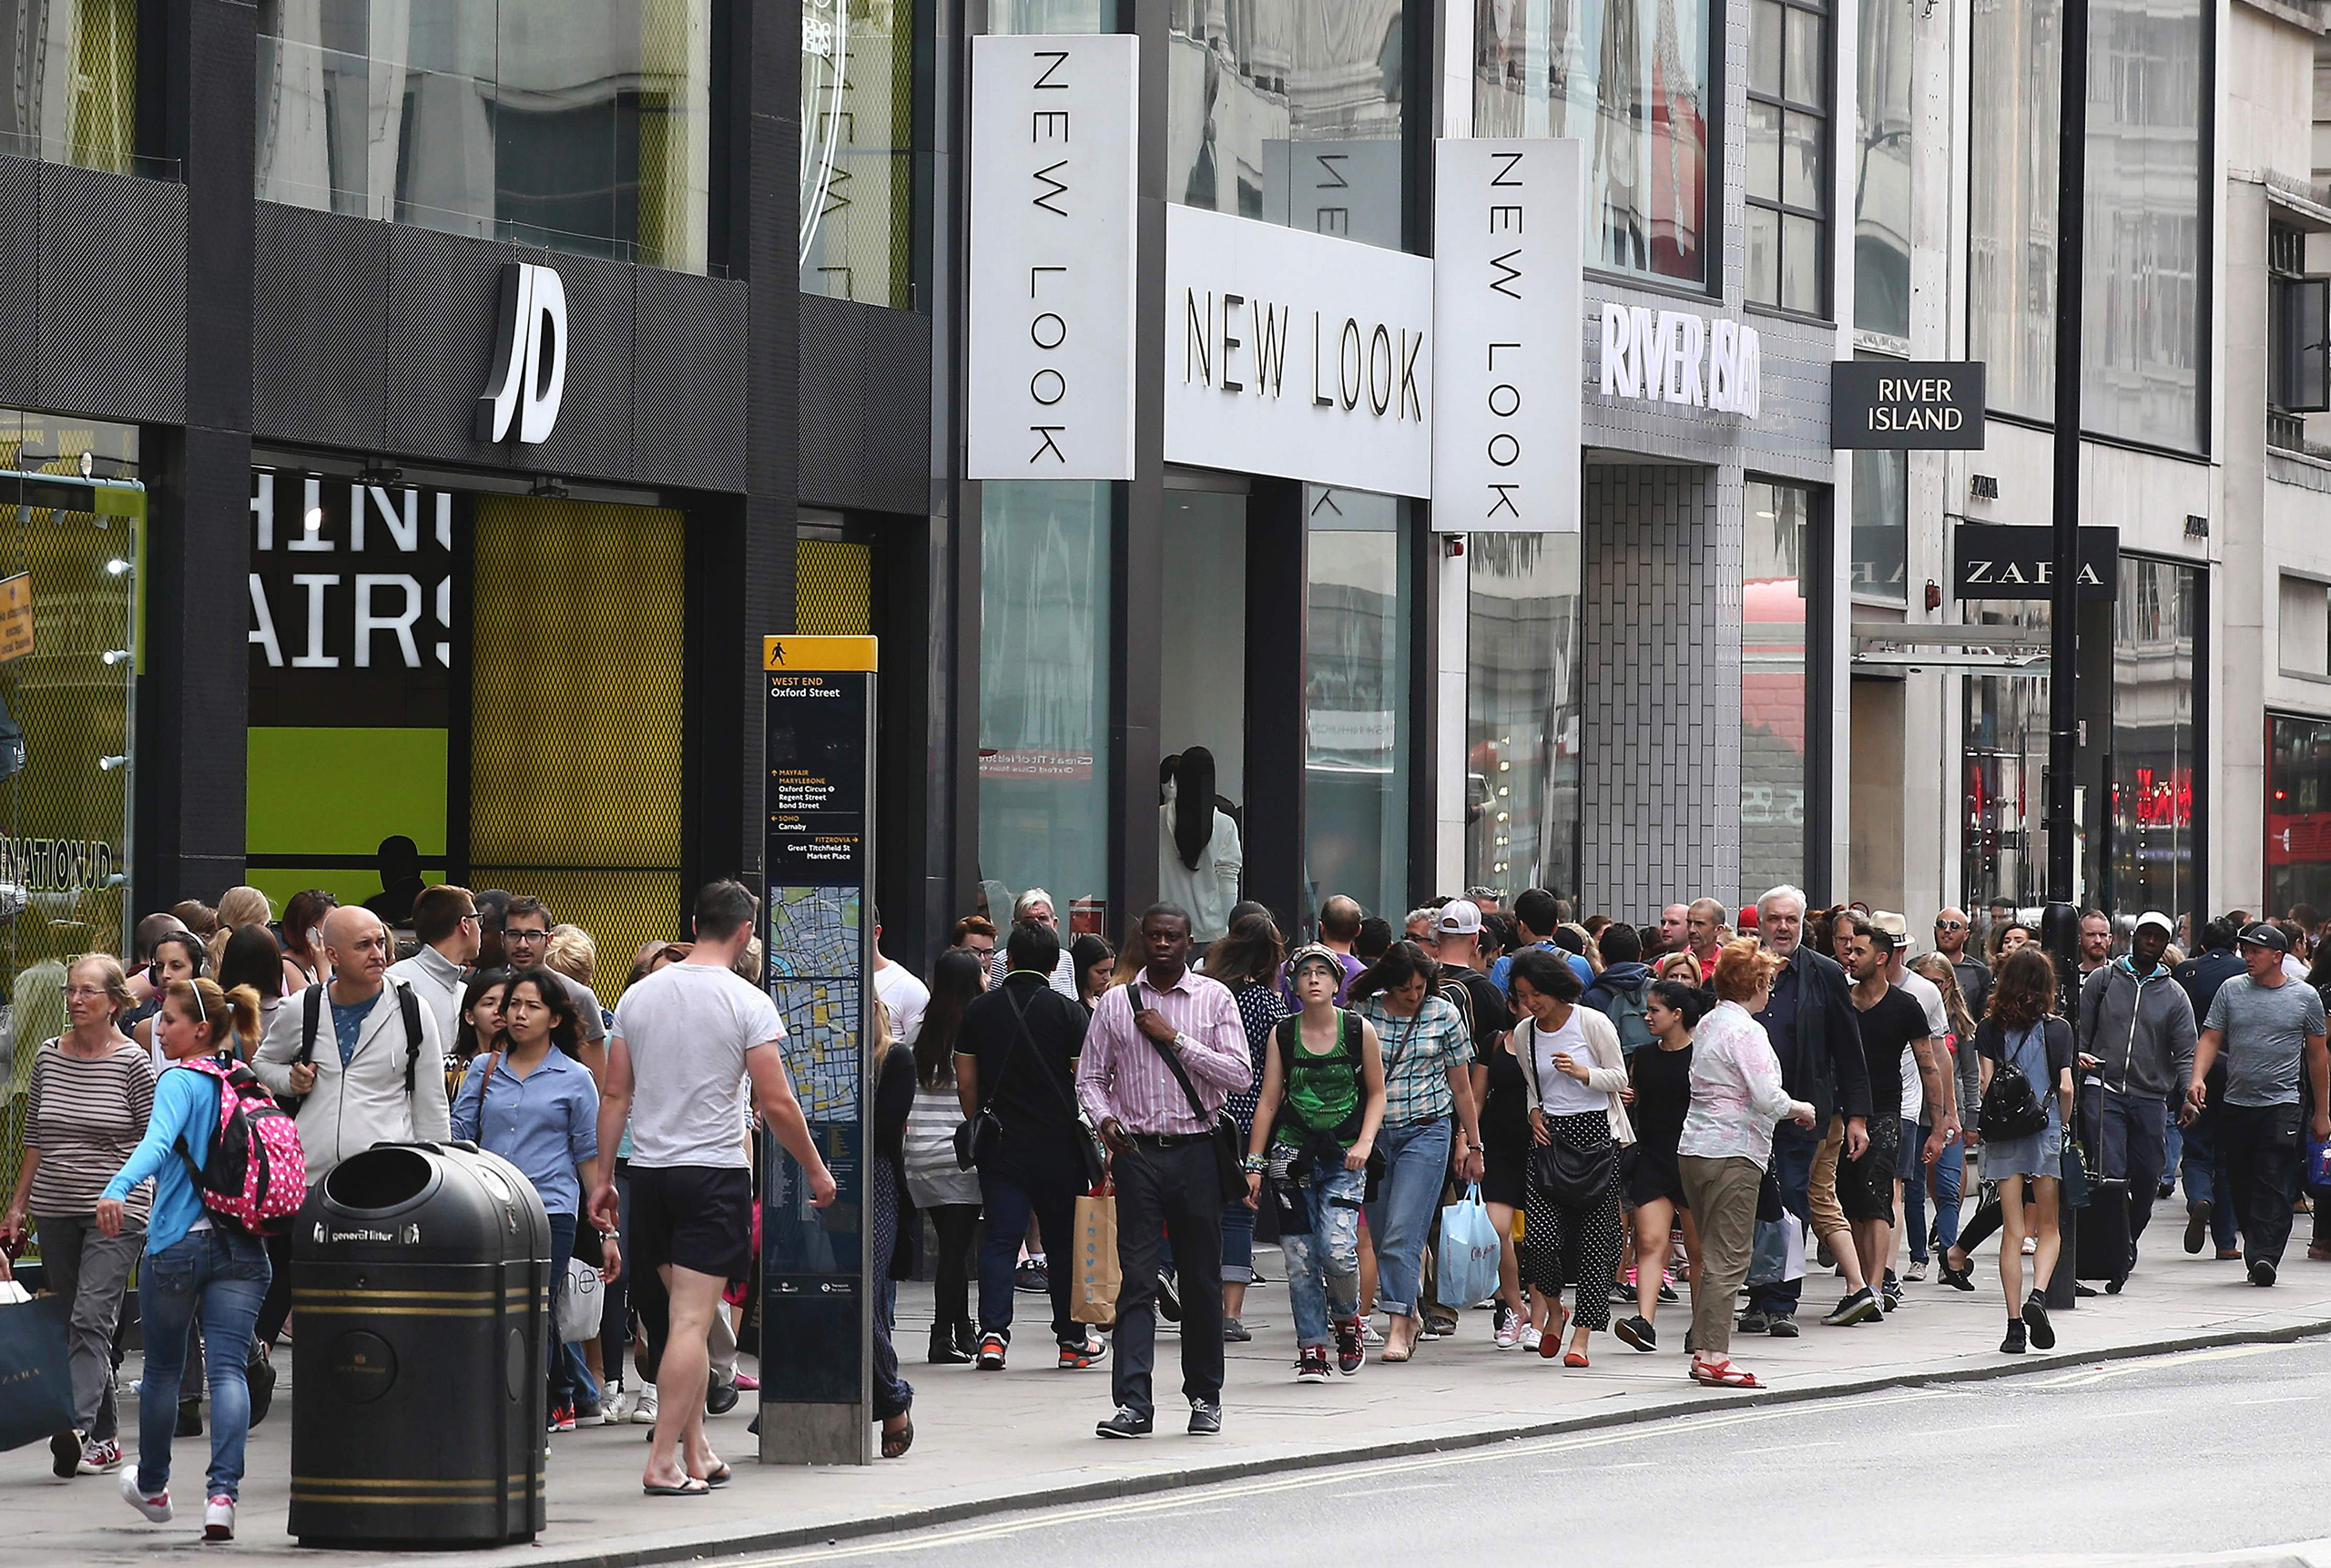 Retail shops on Oxford Street in central London on Aug. 18, 2016.